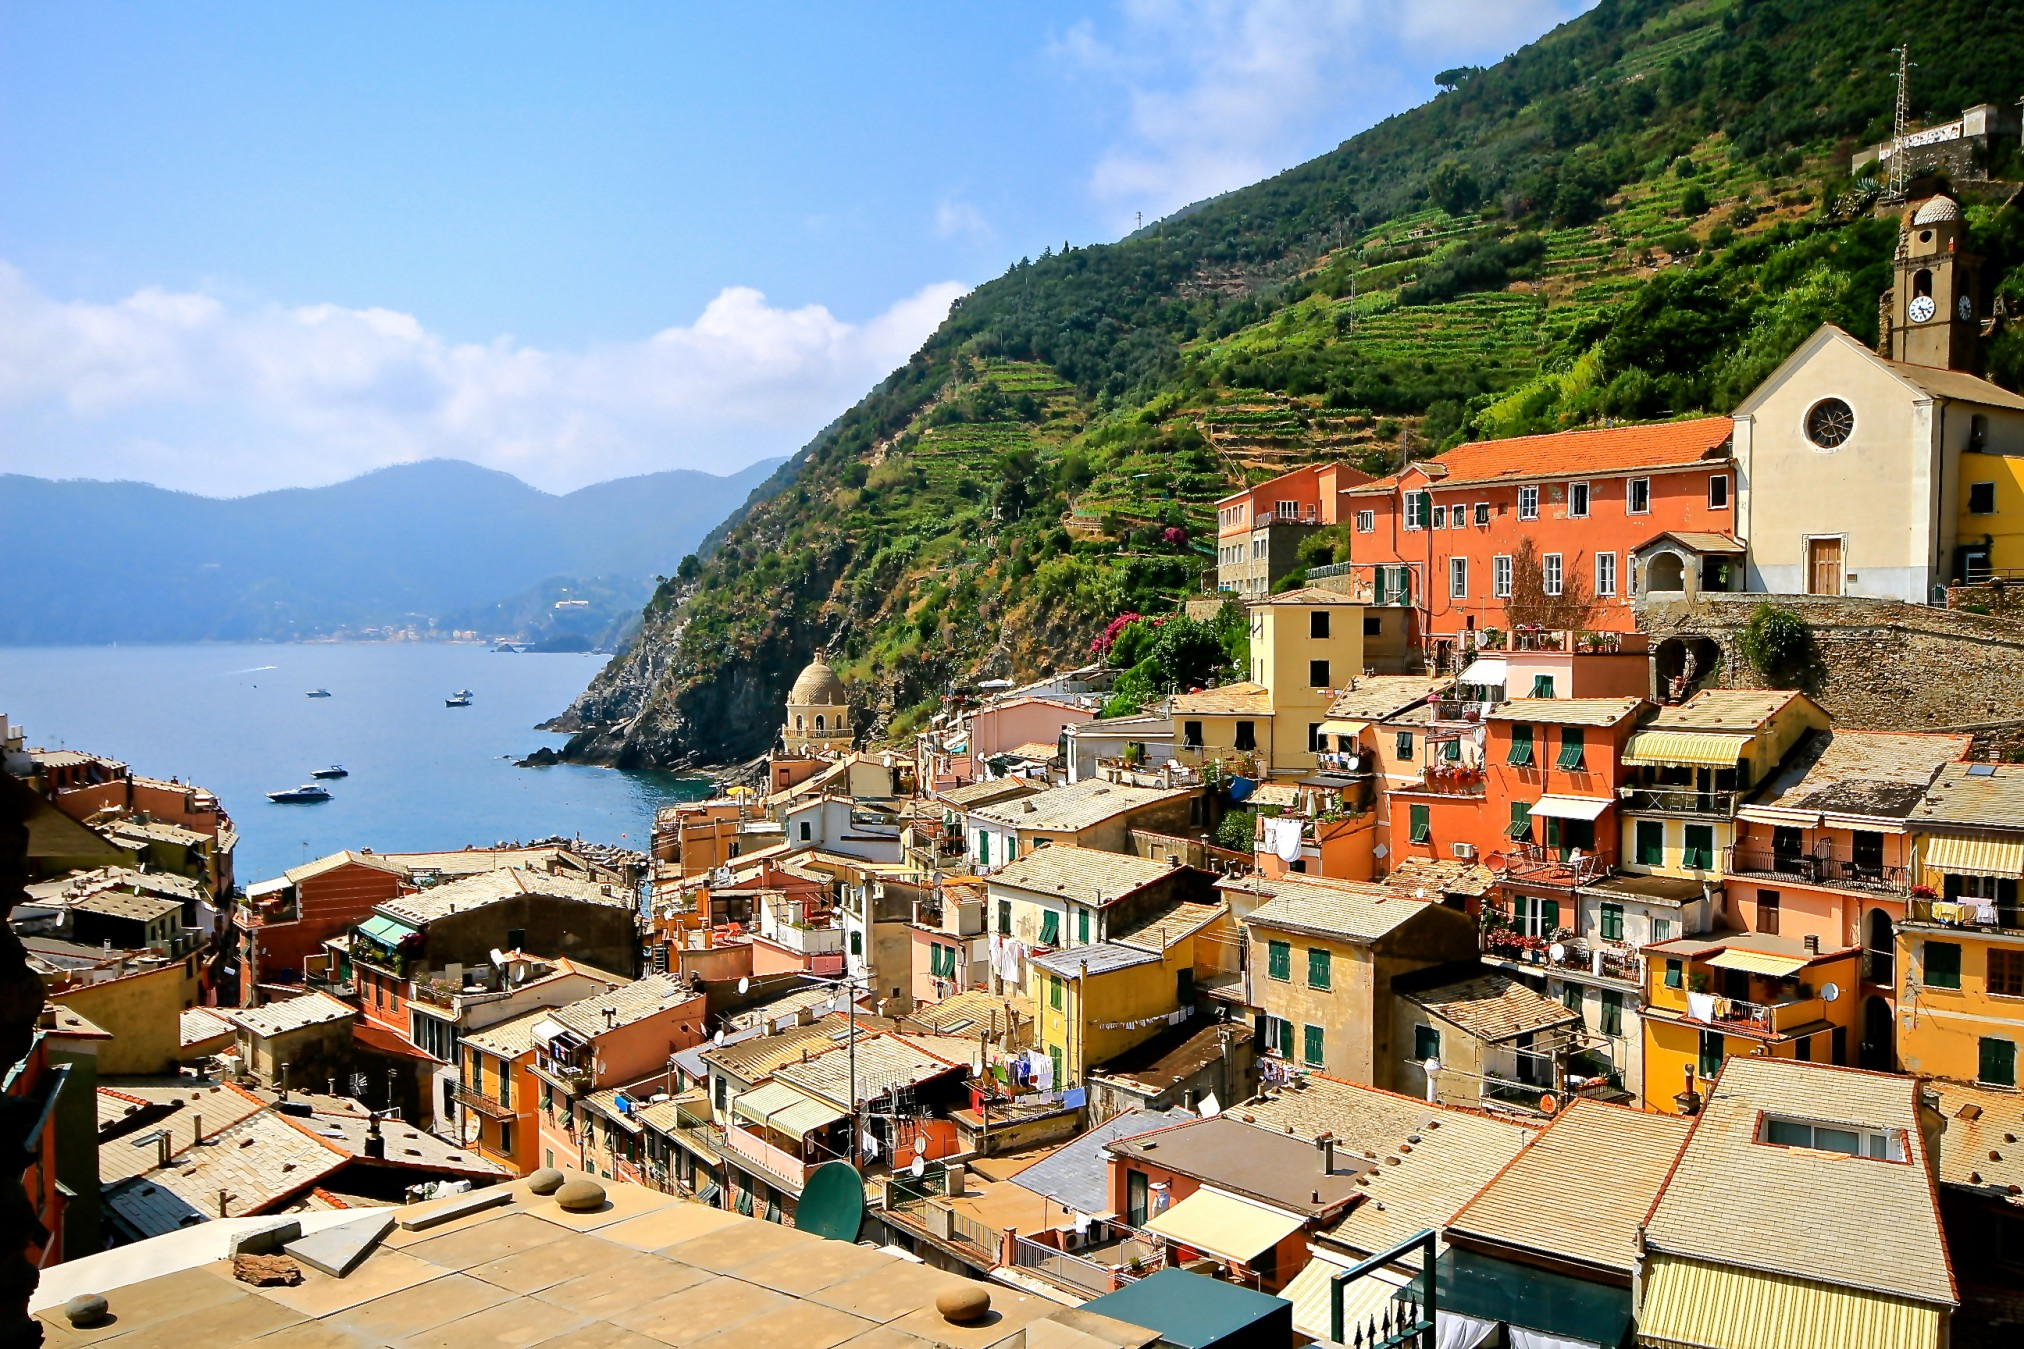 walking down and into the town of Vernazza